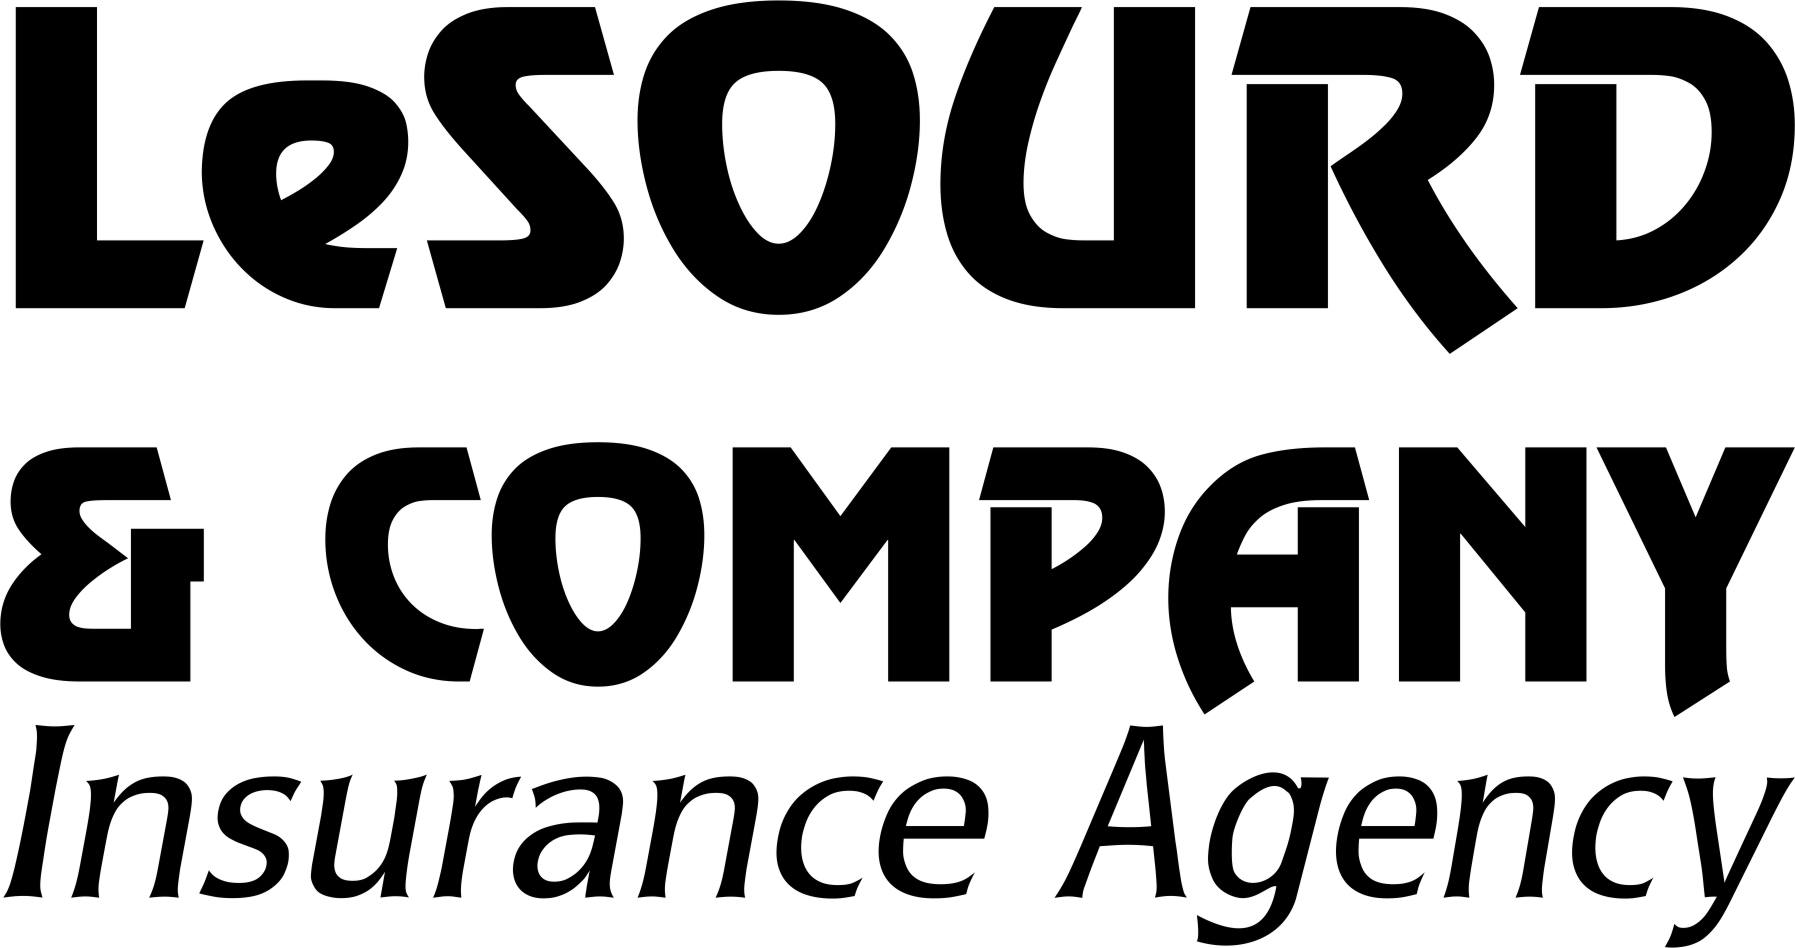 LeSourd and Company Insurance Agency LLC Looking for a Professional Insurance Sales Executive